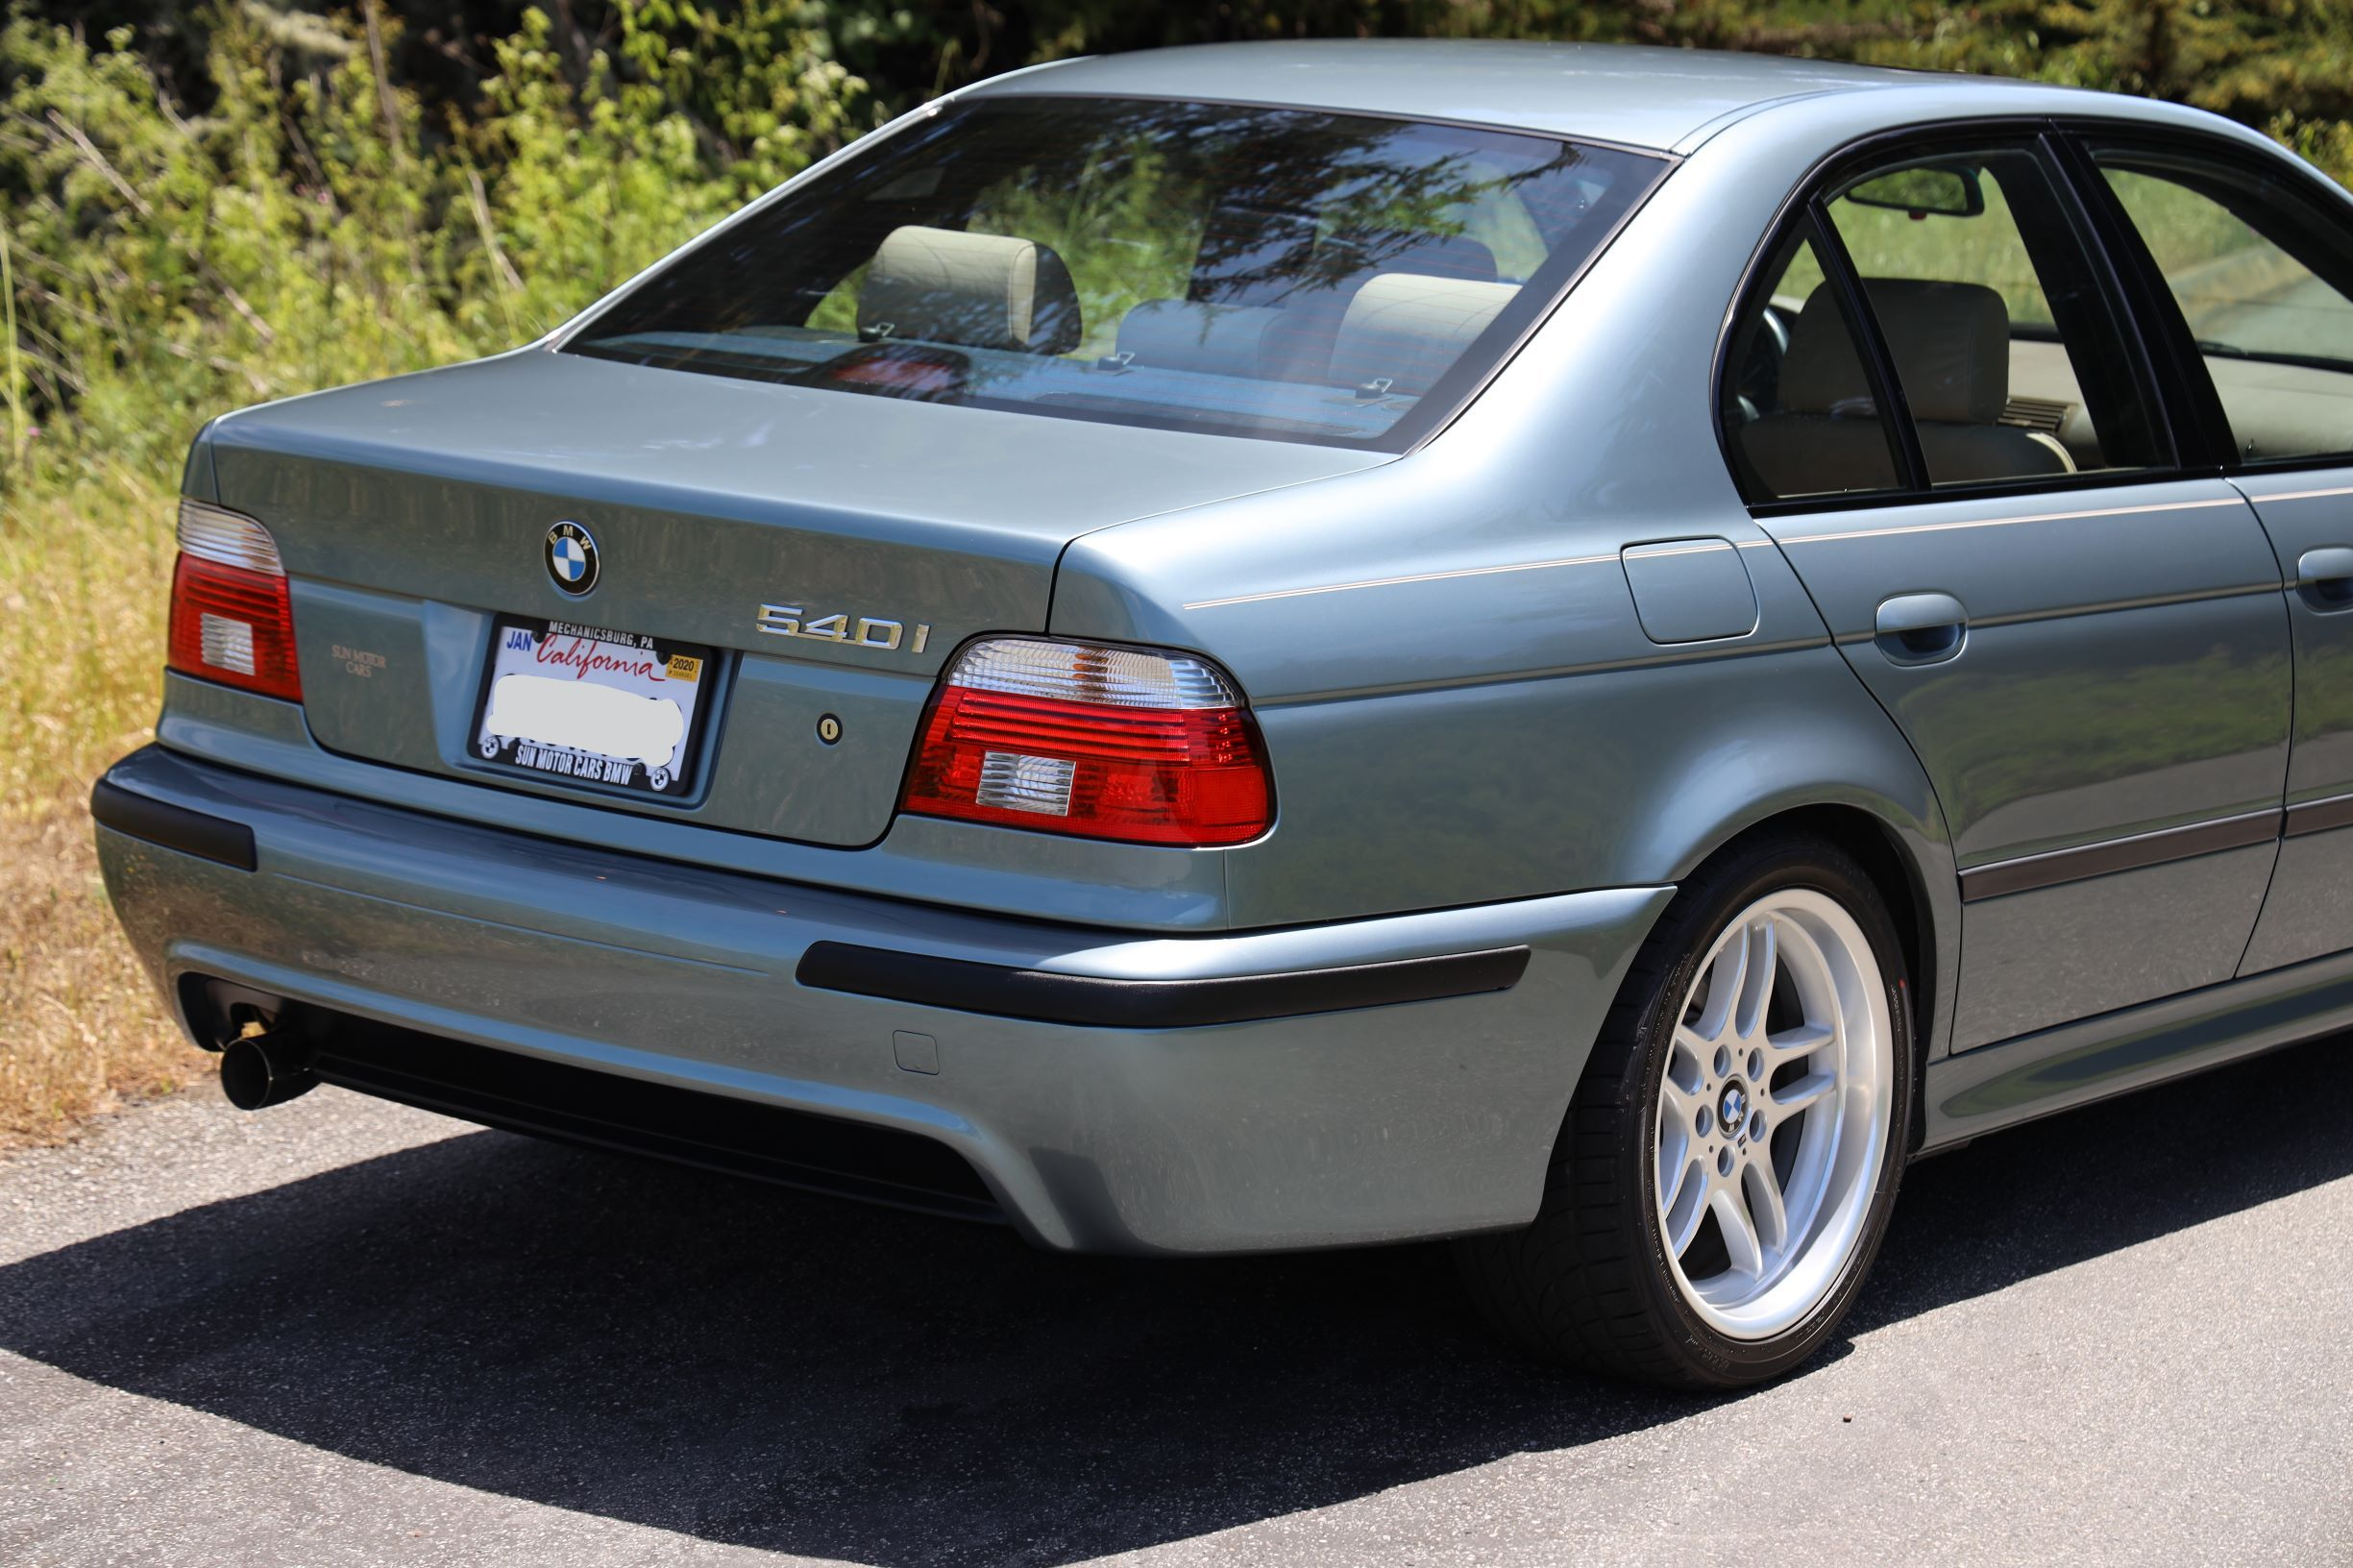 55kMile 2003 BMW 540i M Sport 6Speed Bmw, Classic cars